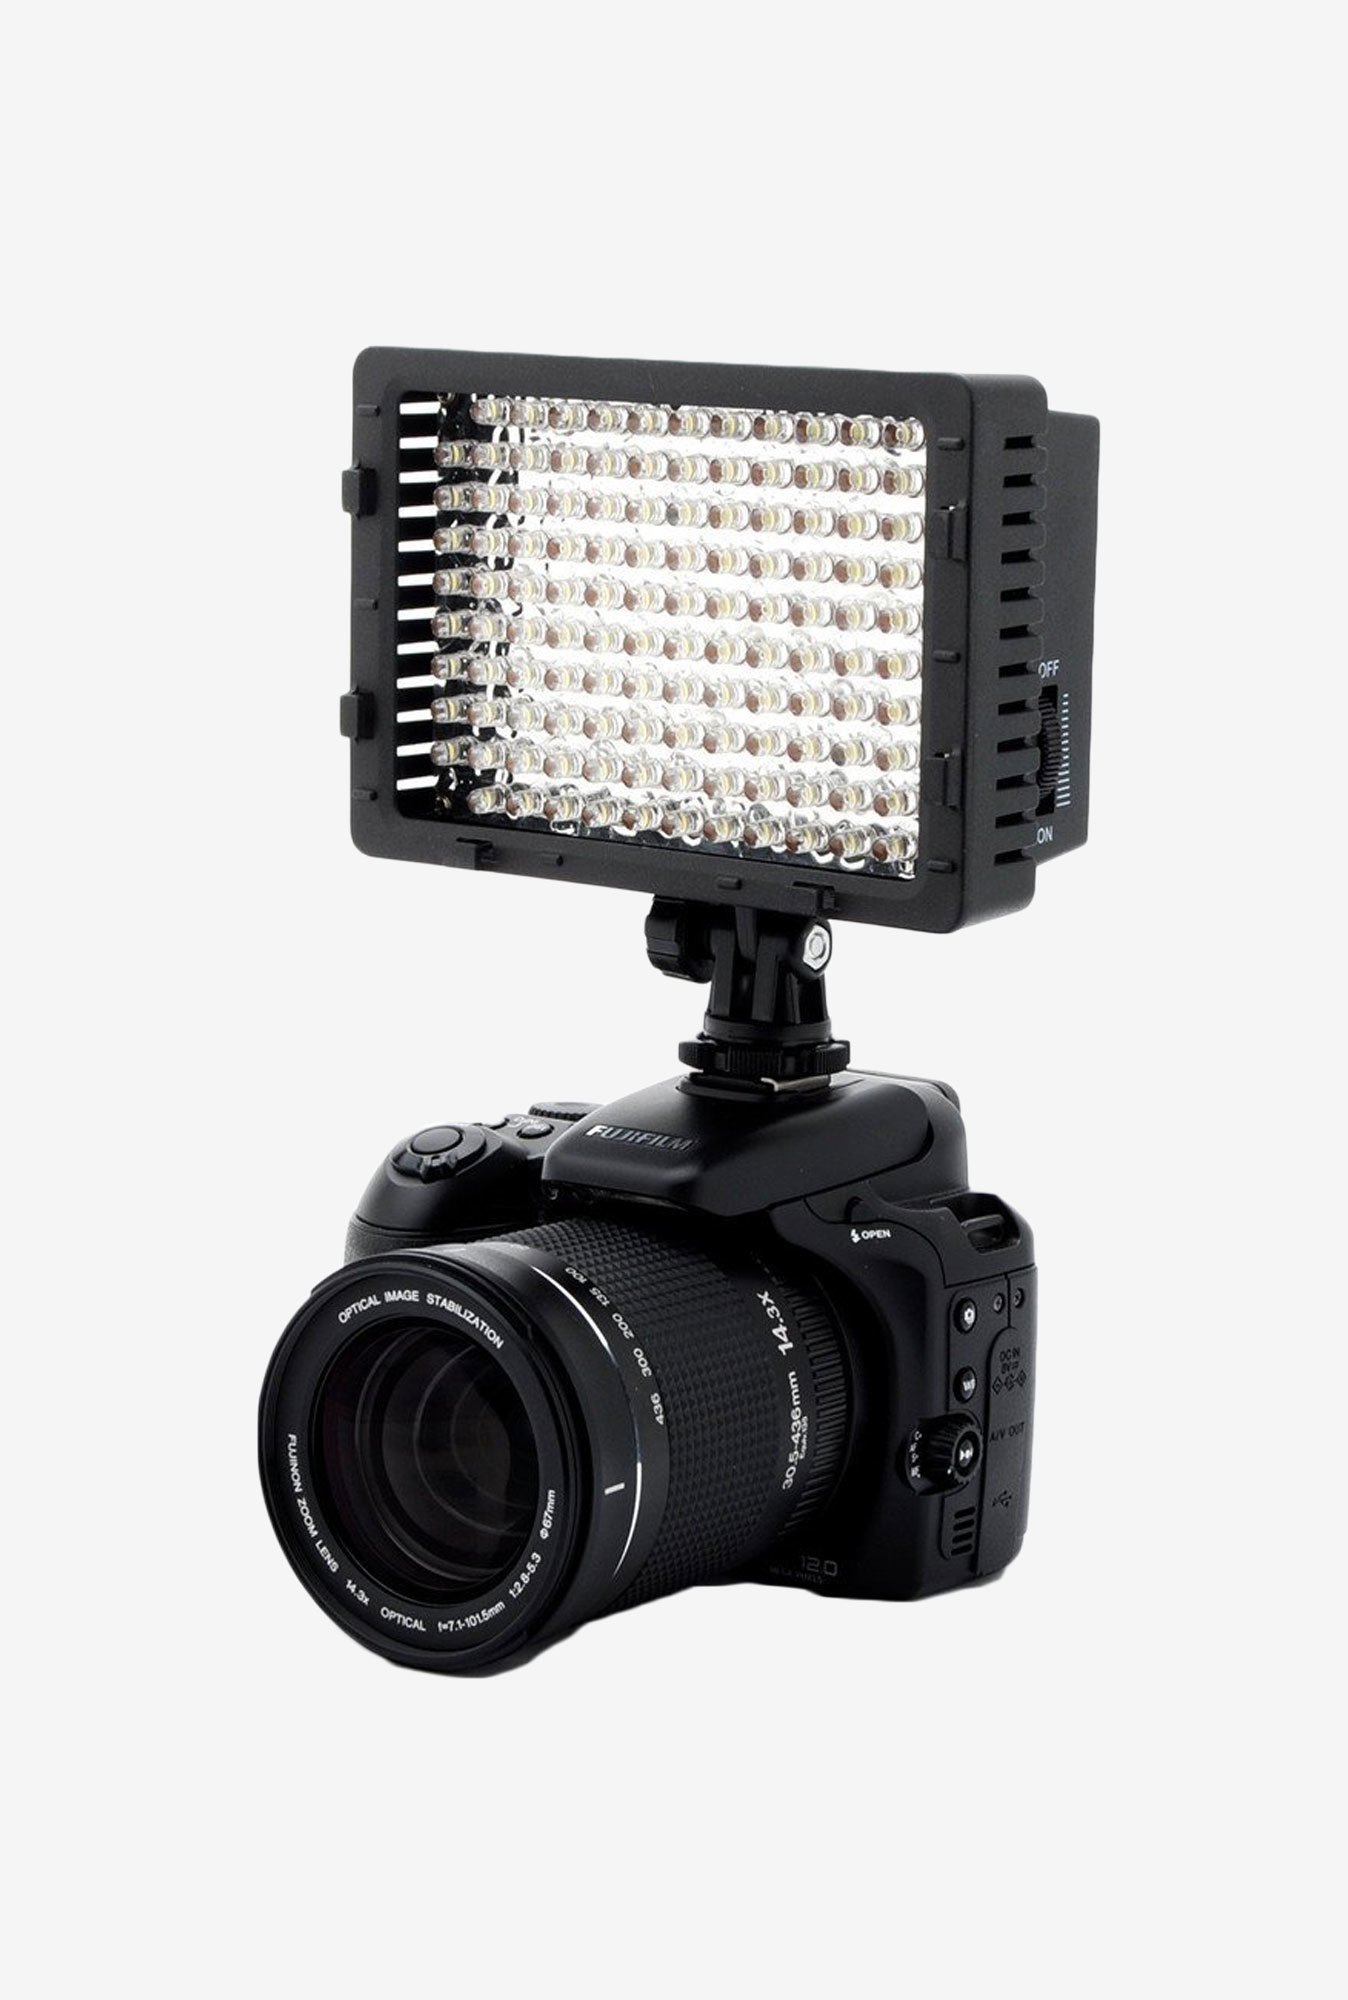 Neewer Cn-126 Led Video Light (Black)